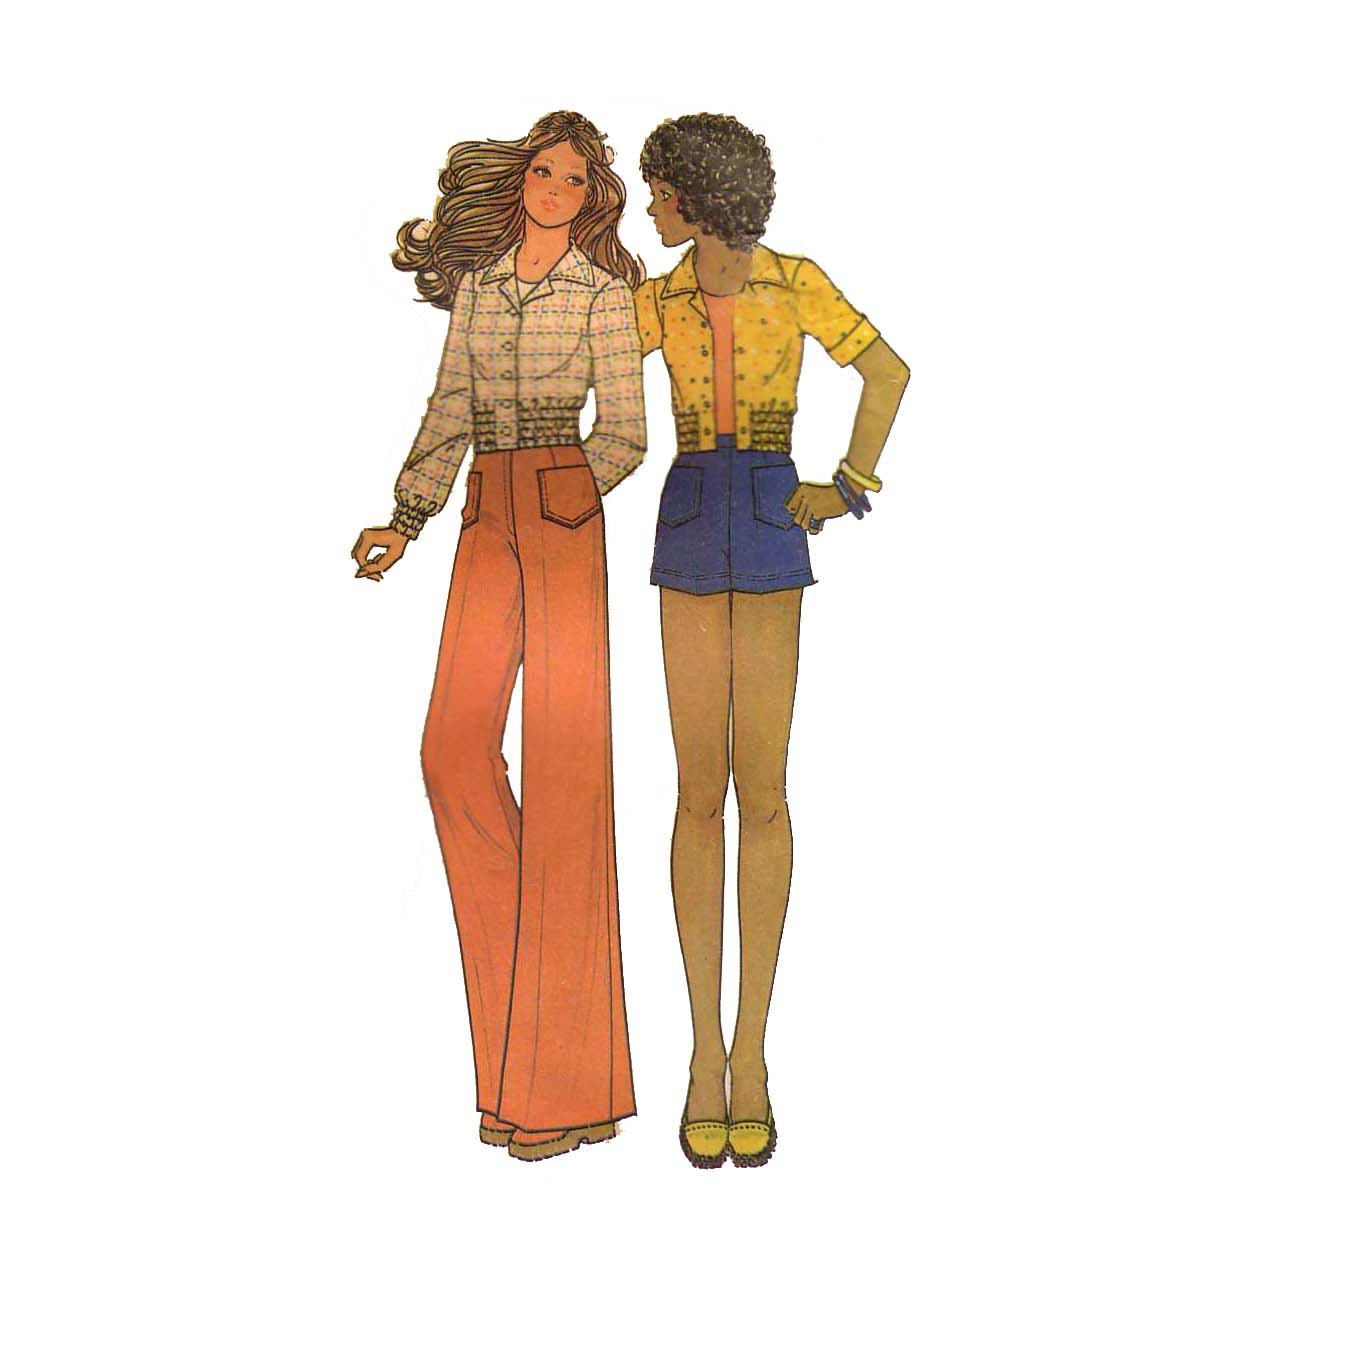 70s hot pants suit photo - 2